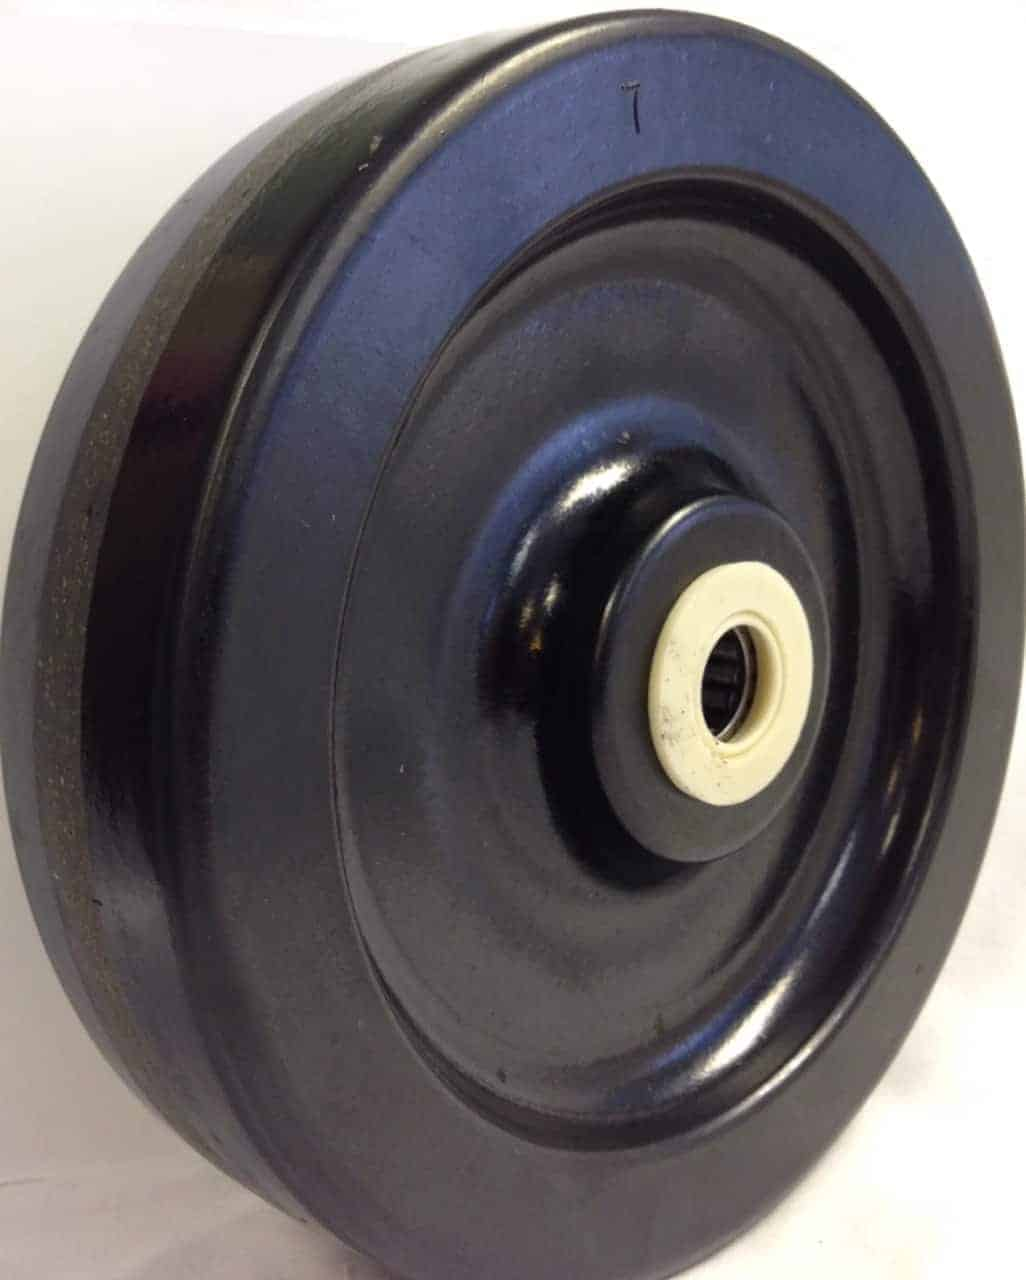 12″ Phenolic Wheel With 3-1/4″ Hub 1-1/4″ Roller Bearing 3500 Lbs Capacity